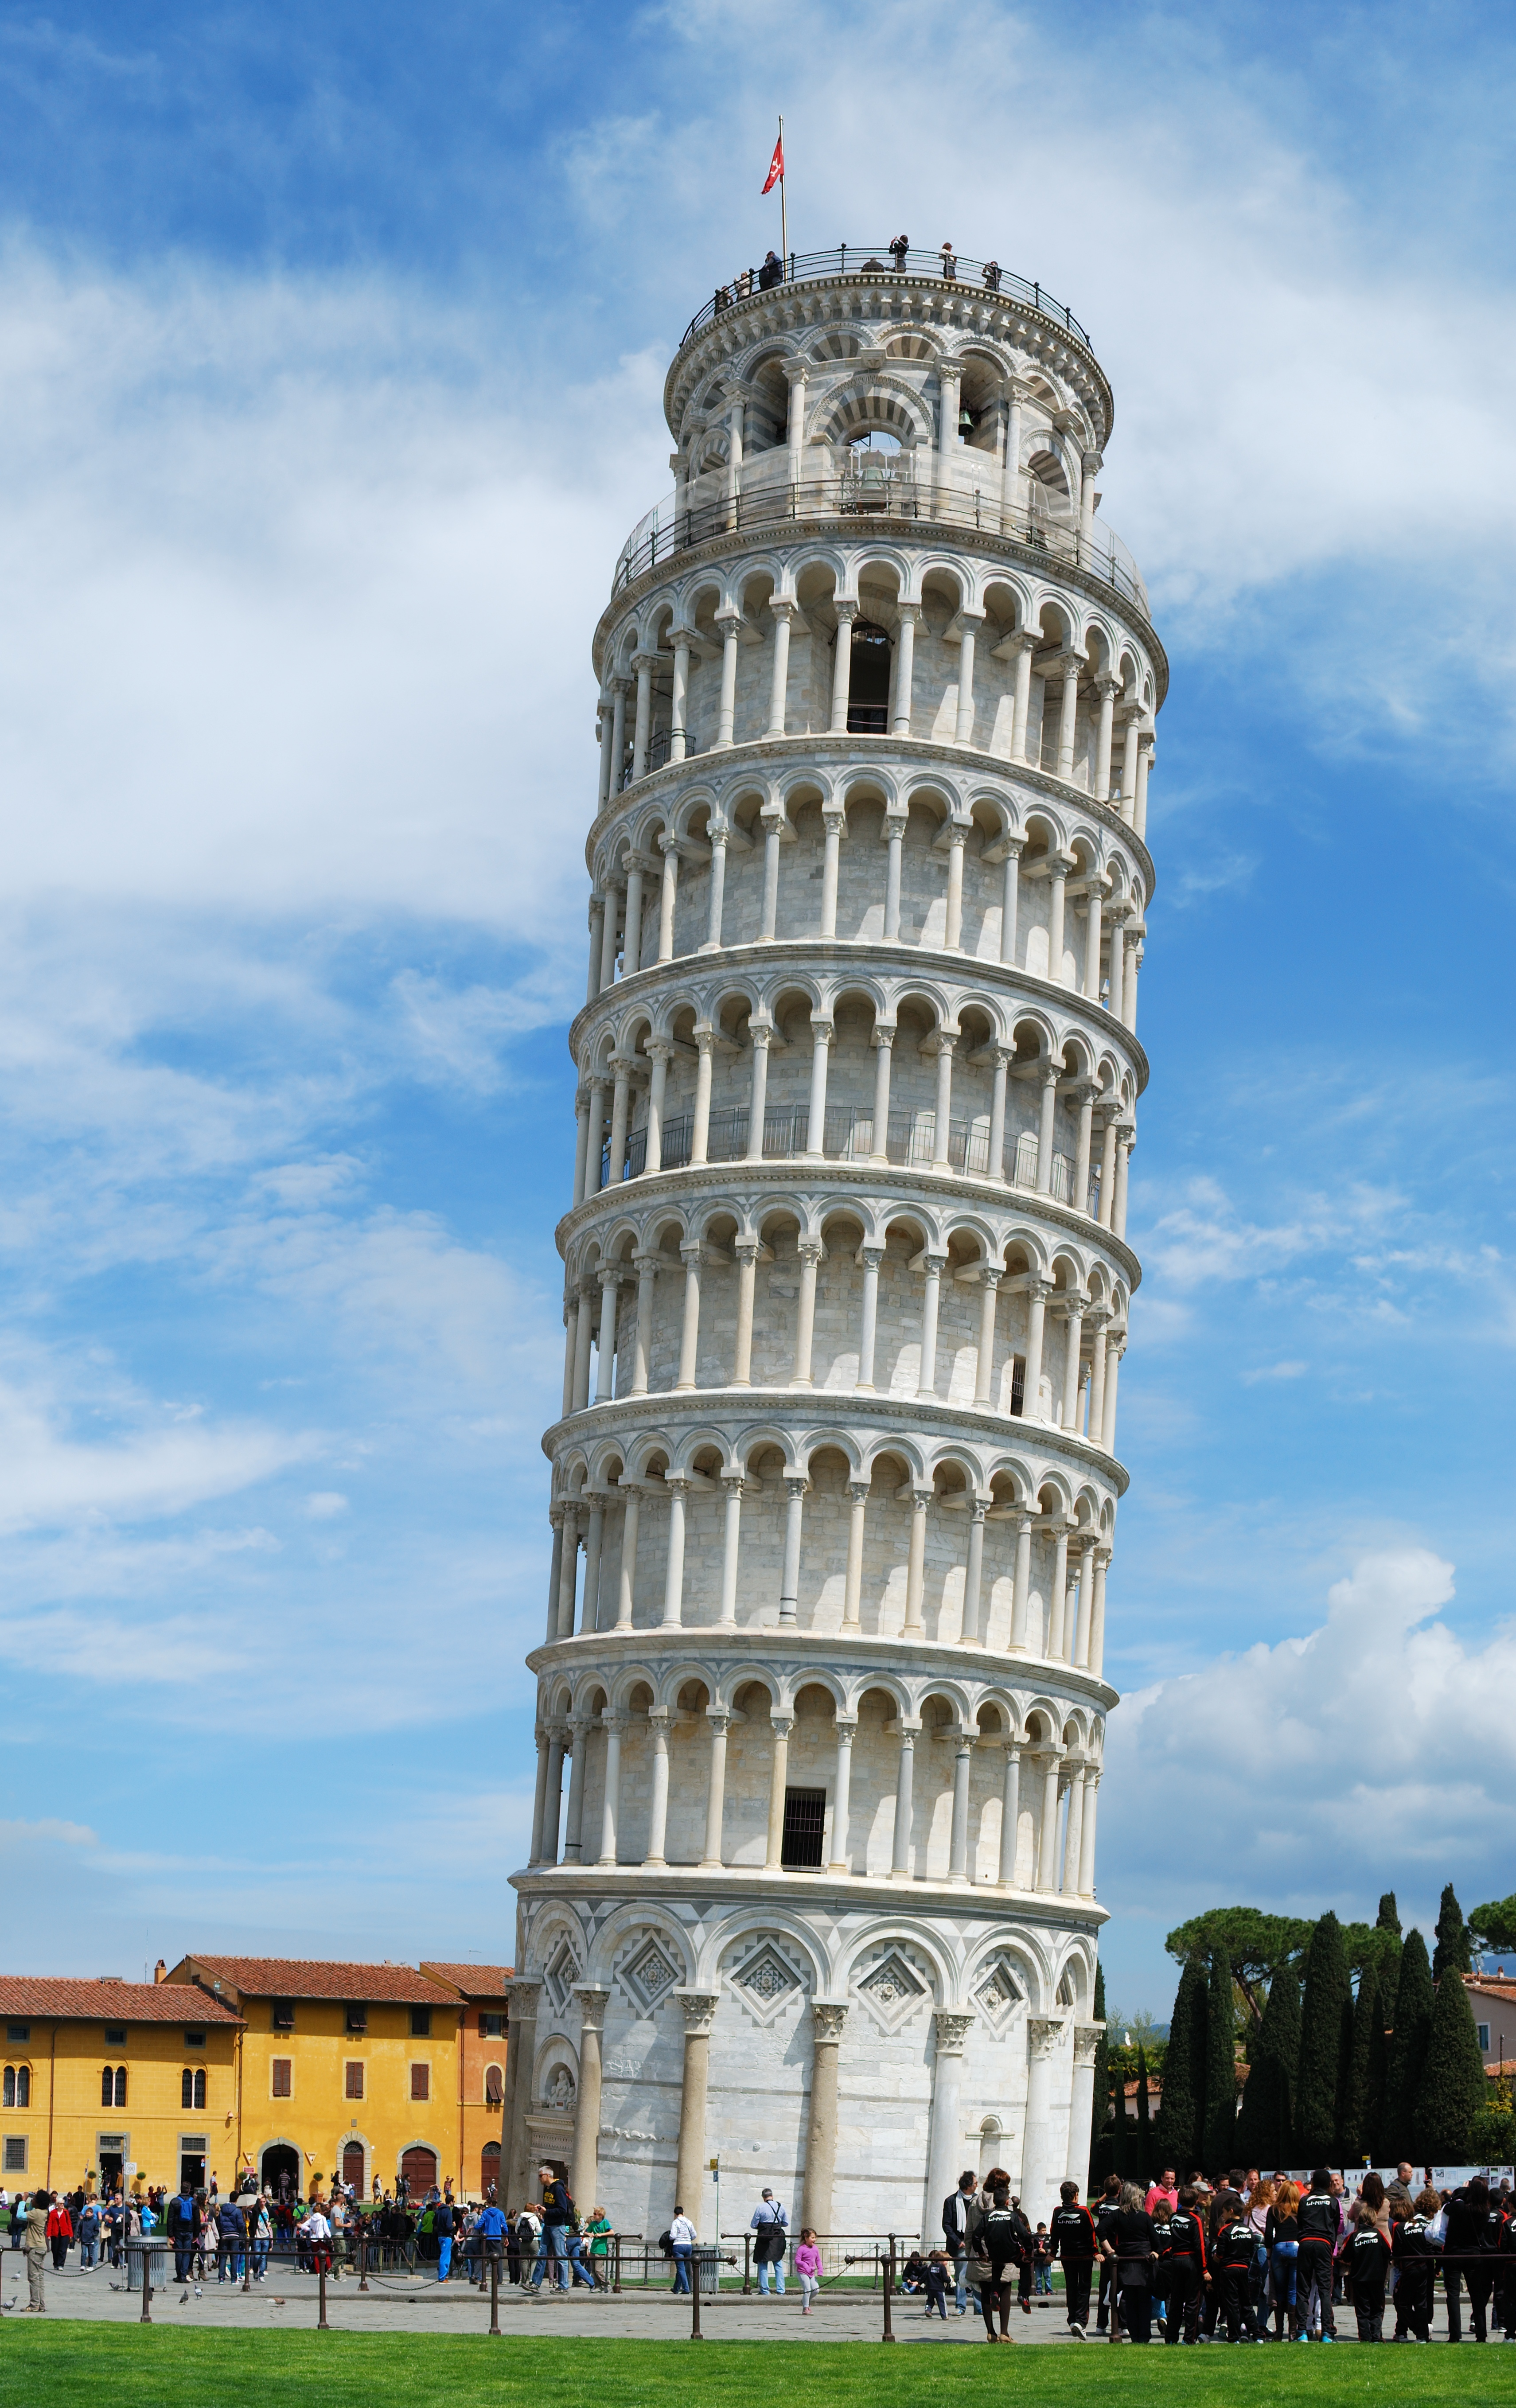 tower of pisa is worst leaning